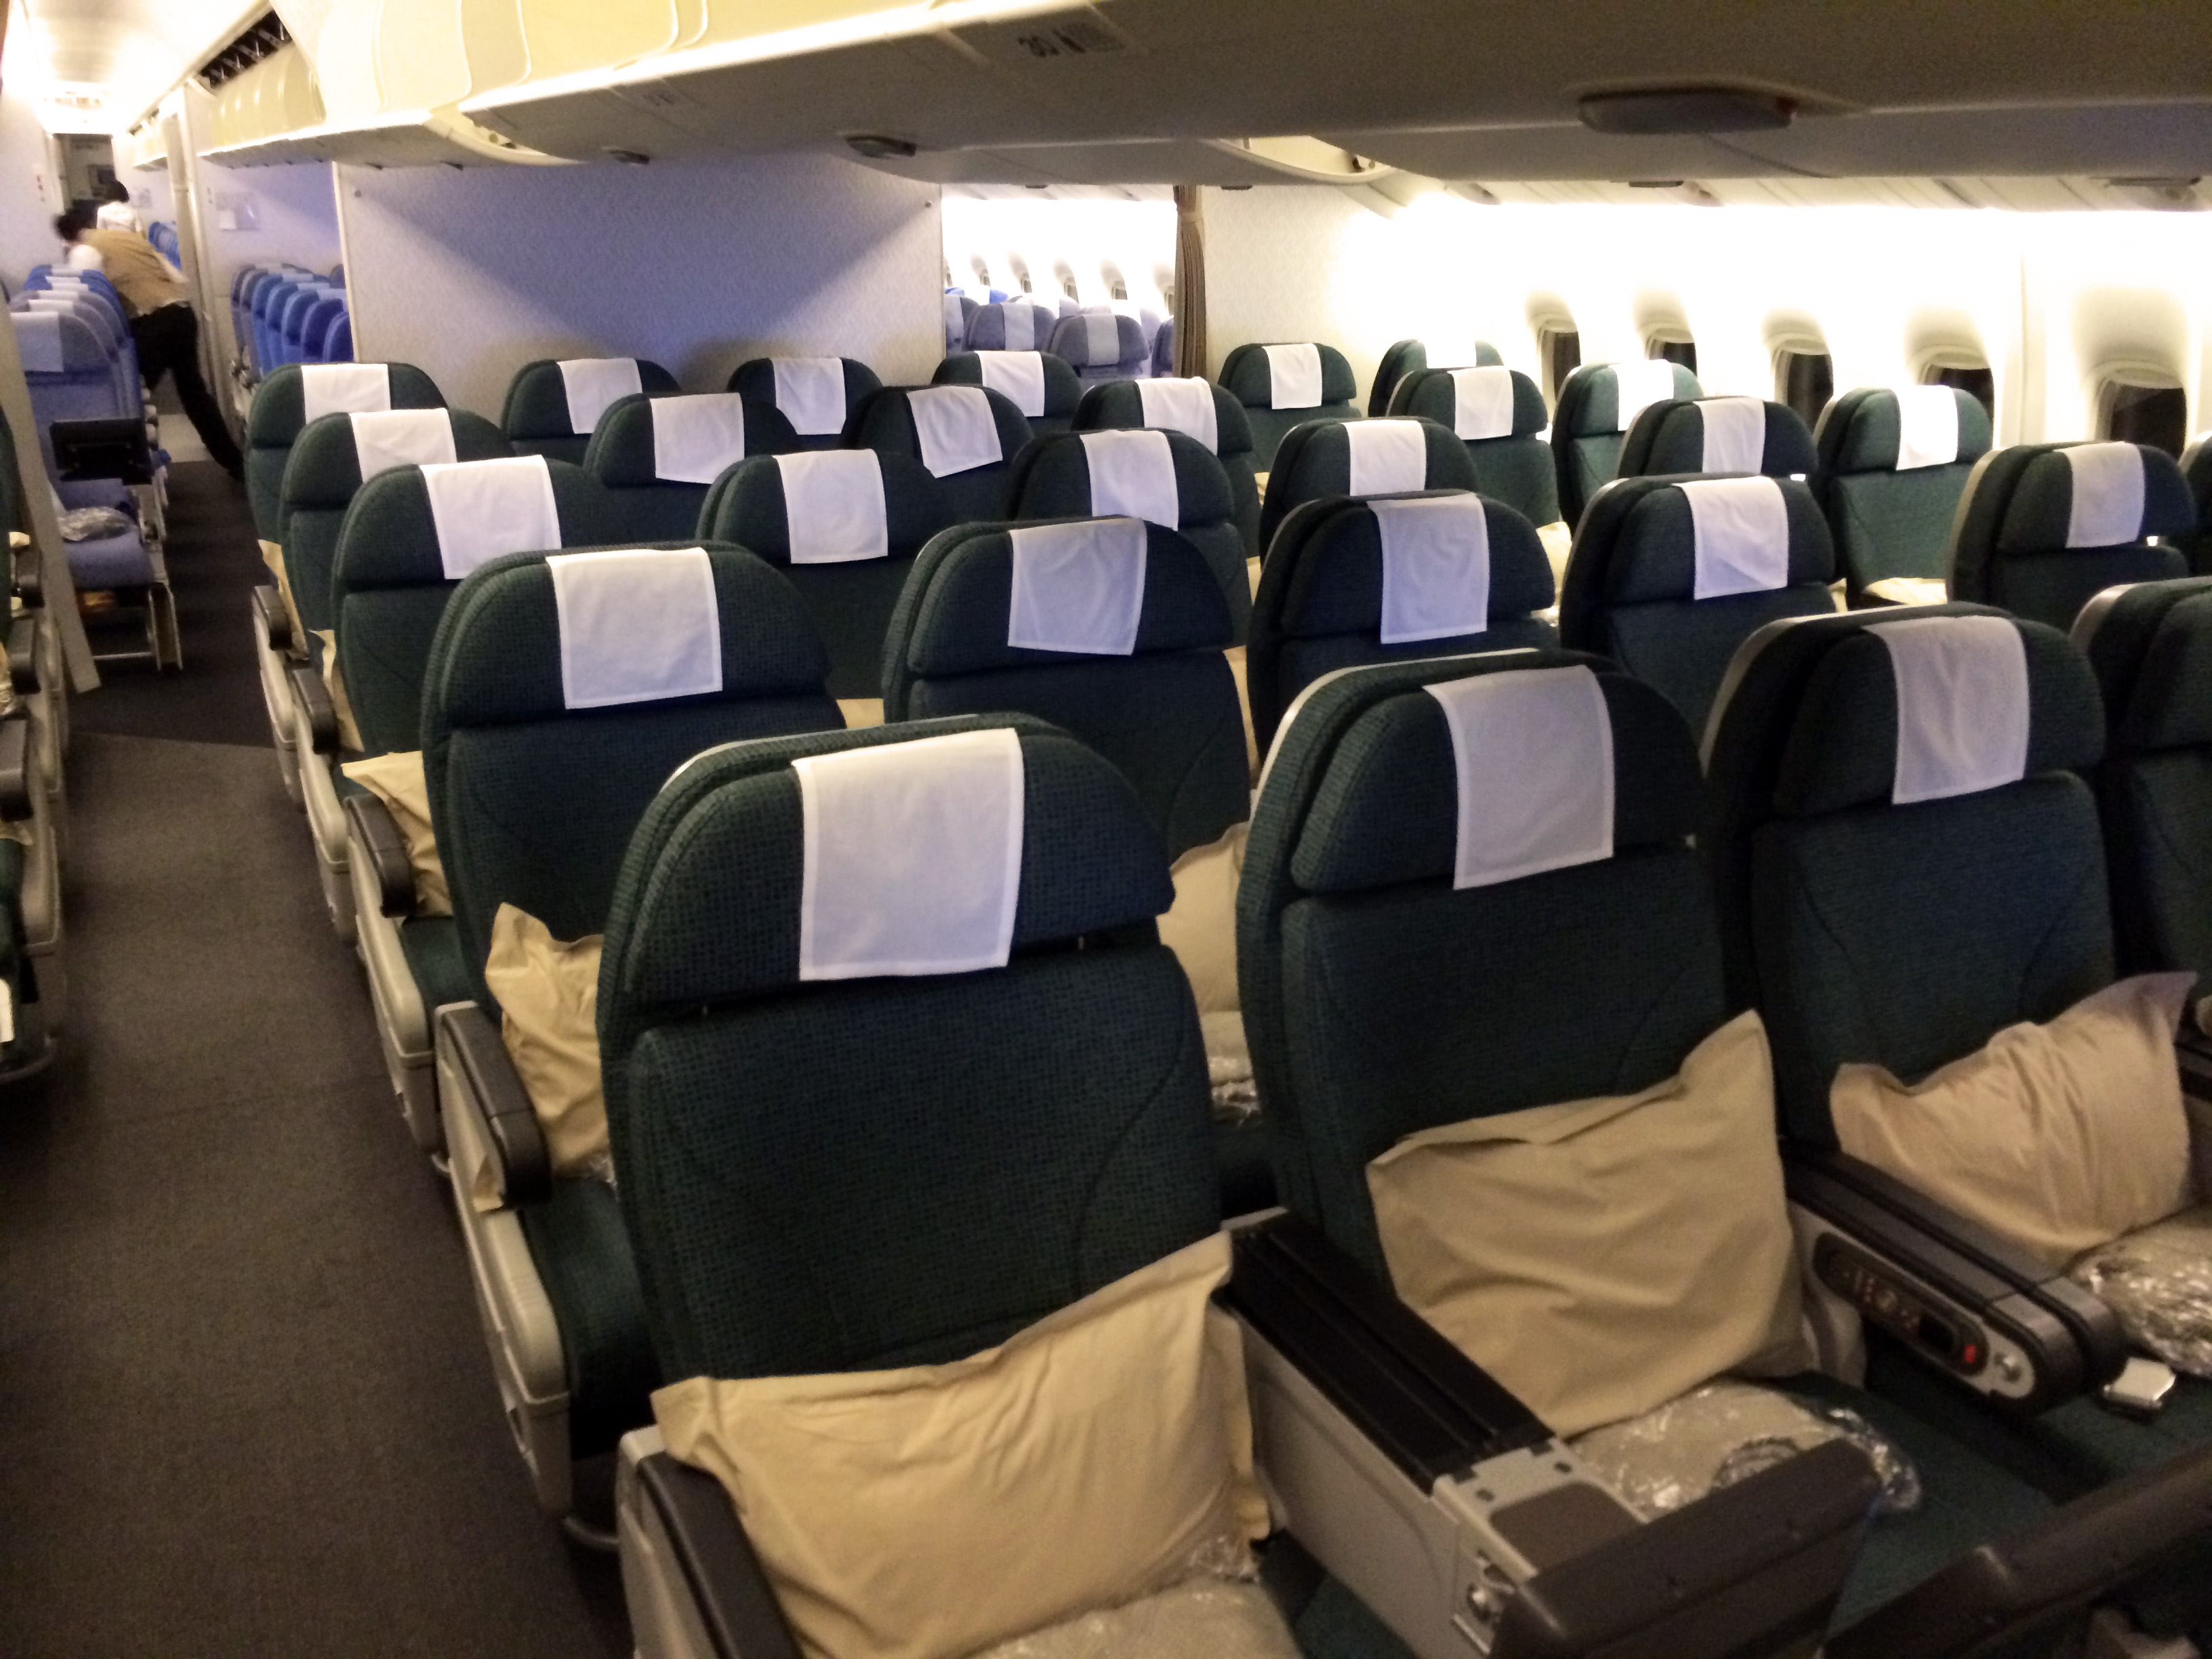 Pic my etihad pearl business class seat 9h on b777 300er may 2012 - Cxpremecon23